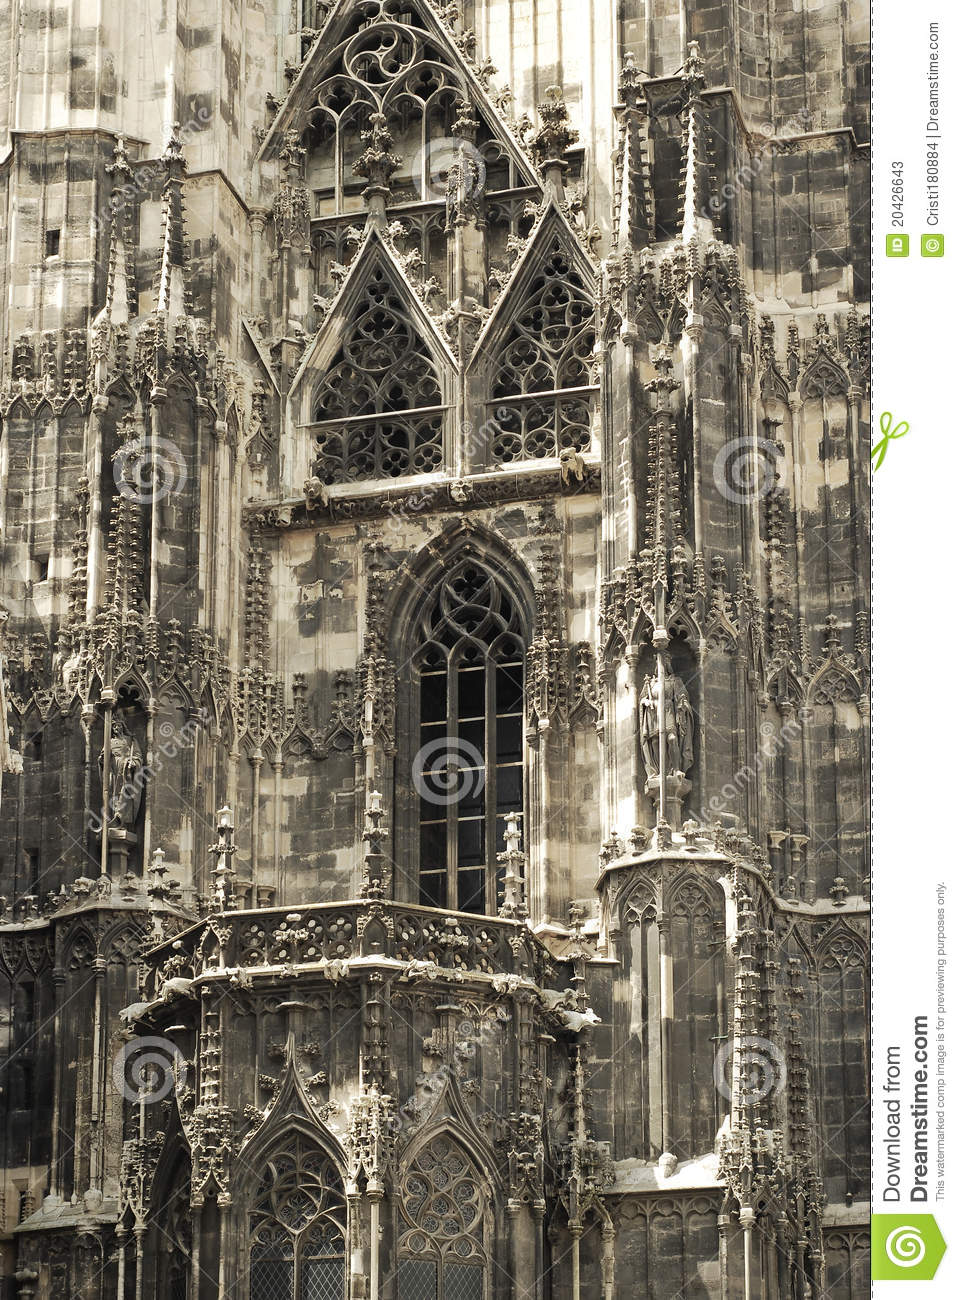 Gothic Architecture Stock Photos - Image: 20426643